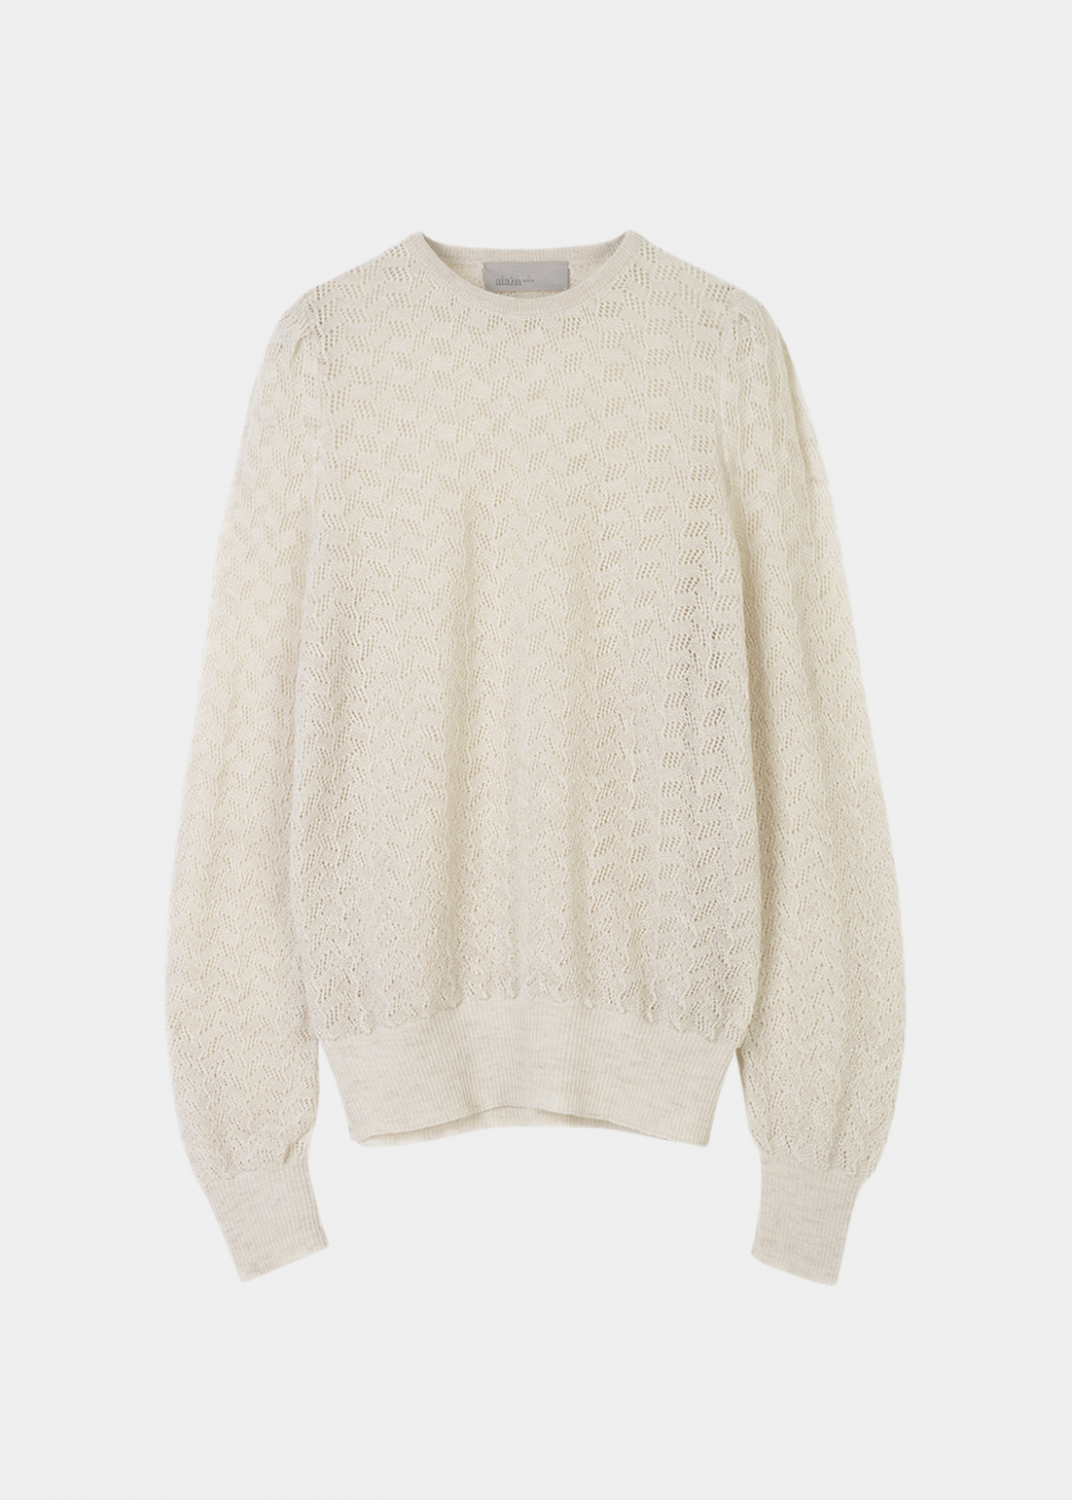 Knits - Shapiro Knit Blouse Thumbnail